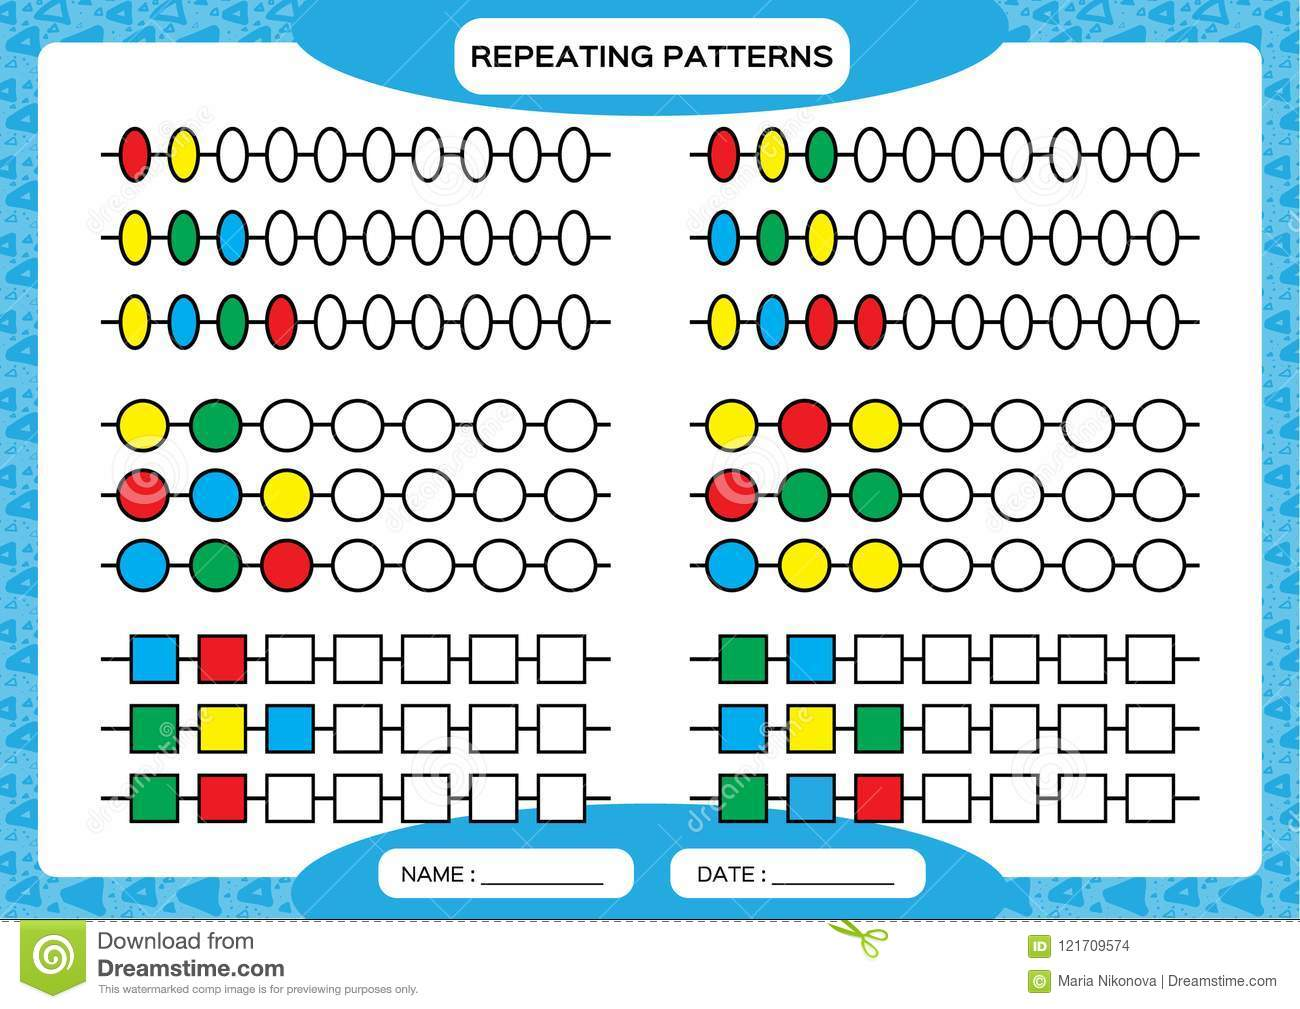 Complete Repeating Patterns Worksheet For Preschool Kids Practicing Motor Skills Improving